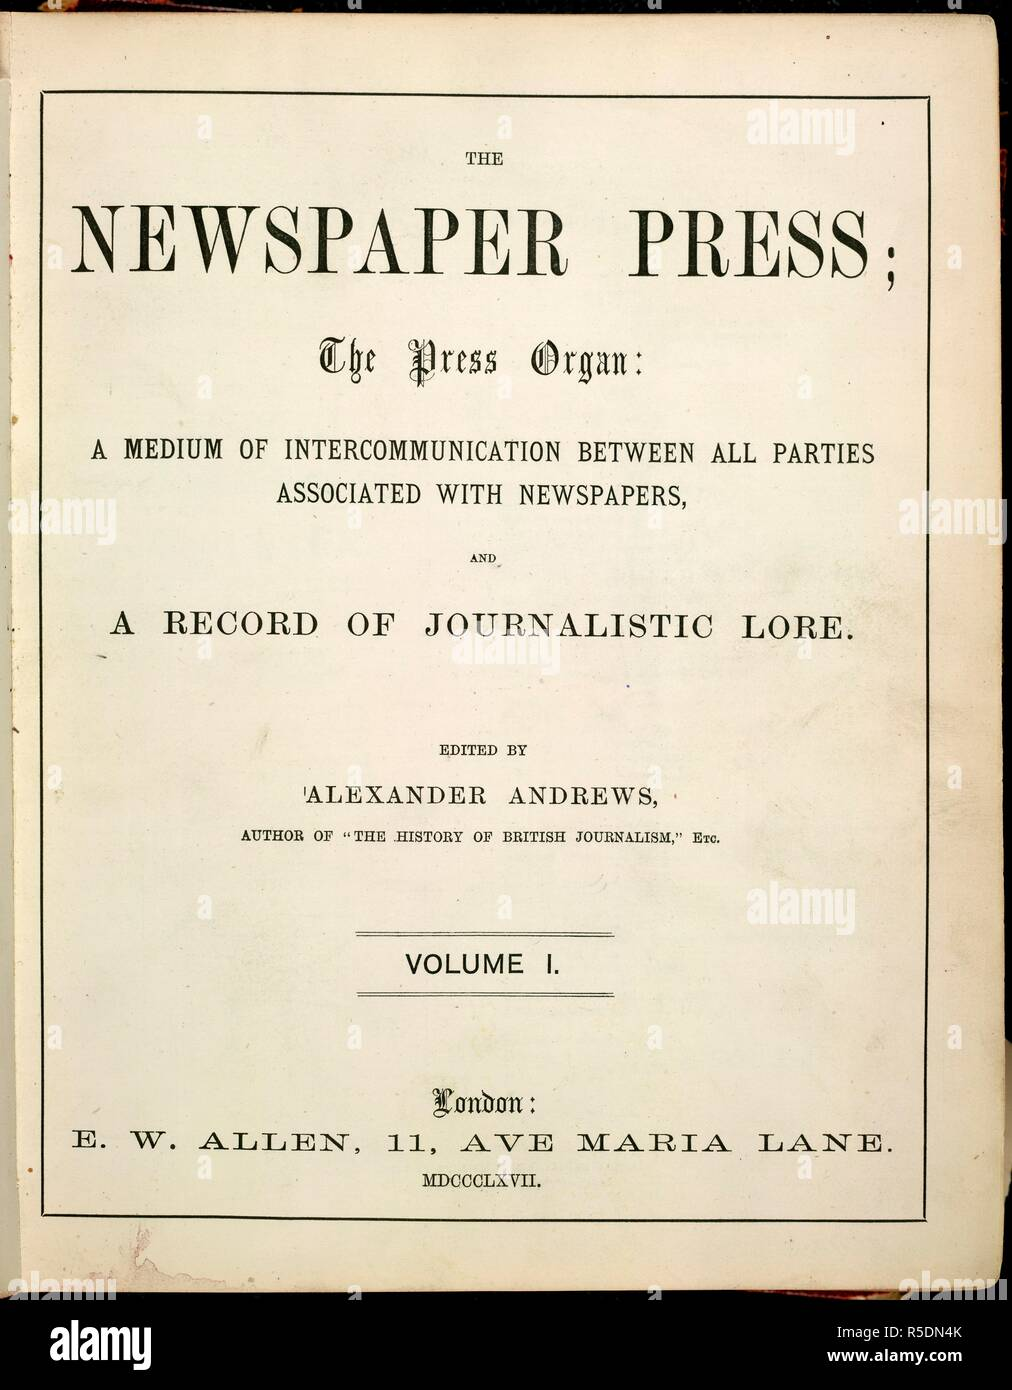 Title page of The Newspaper Press, volume 1. The Newspaper Press. vol. 1-6.. The Press organ: A medium of intercommunication between all parties associated with newspapers, and a record of journalistic lore. London, 1866-72. Source: P.P.6481.e. Language: English. - Stock Image